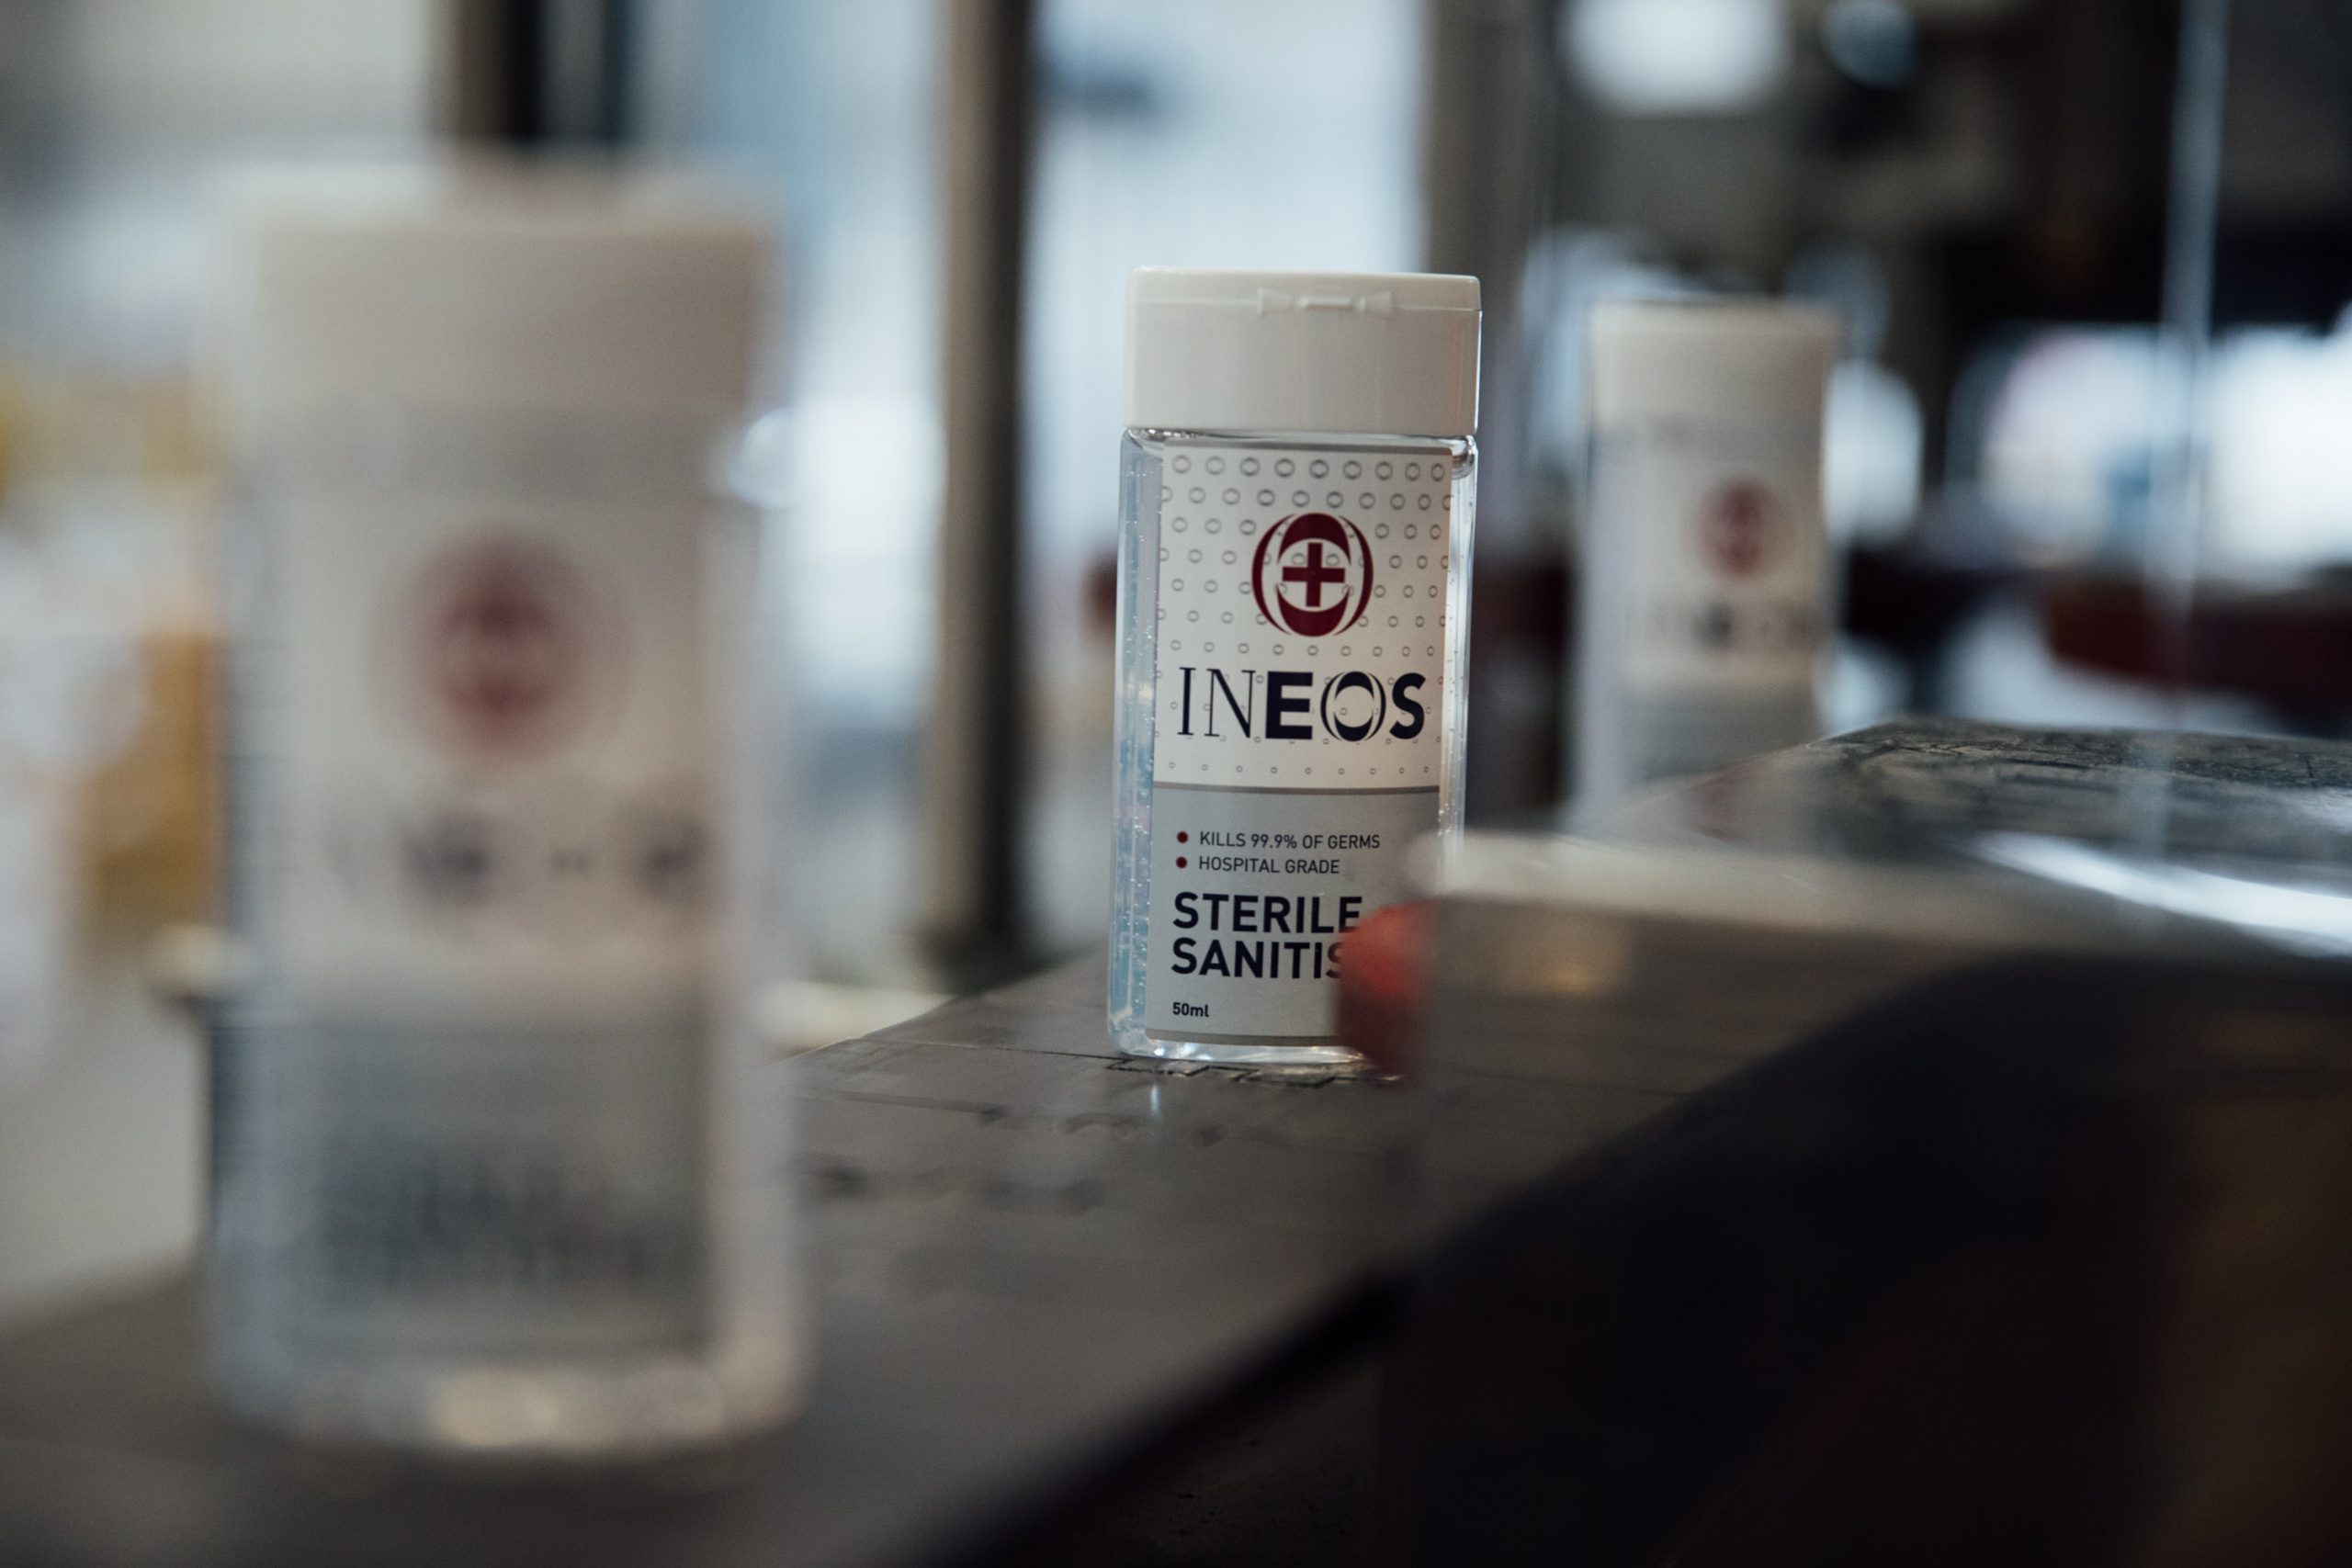 https://project-one.ineos.com/wp-content/uploads/2020/04/Handgel-3-min-scaled.jpg